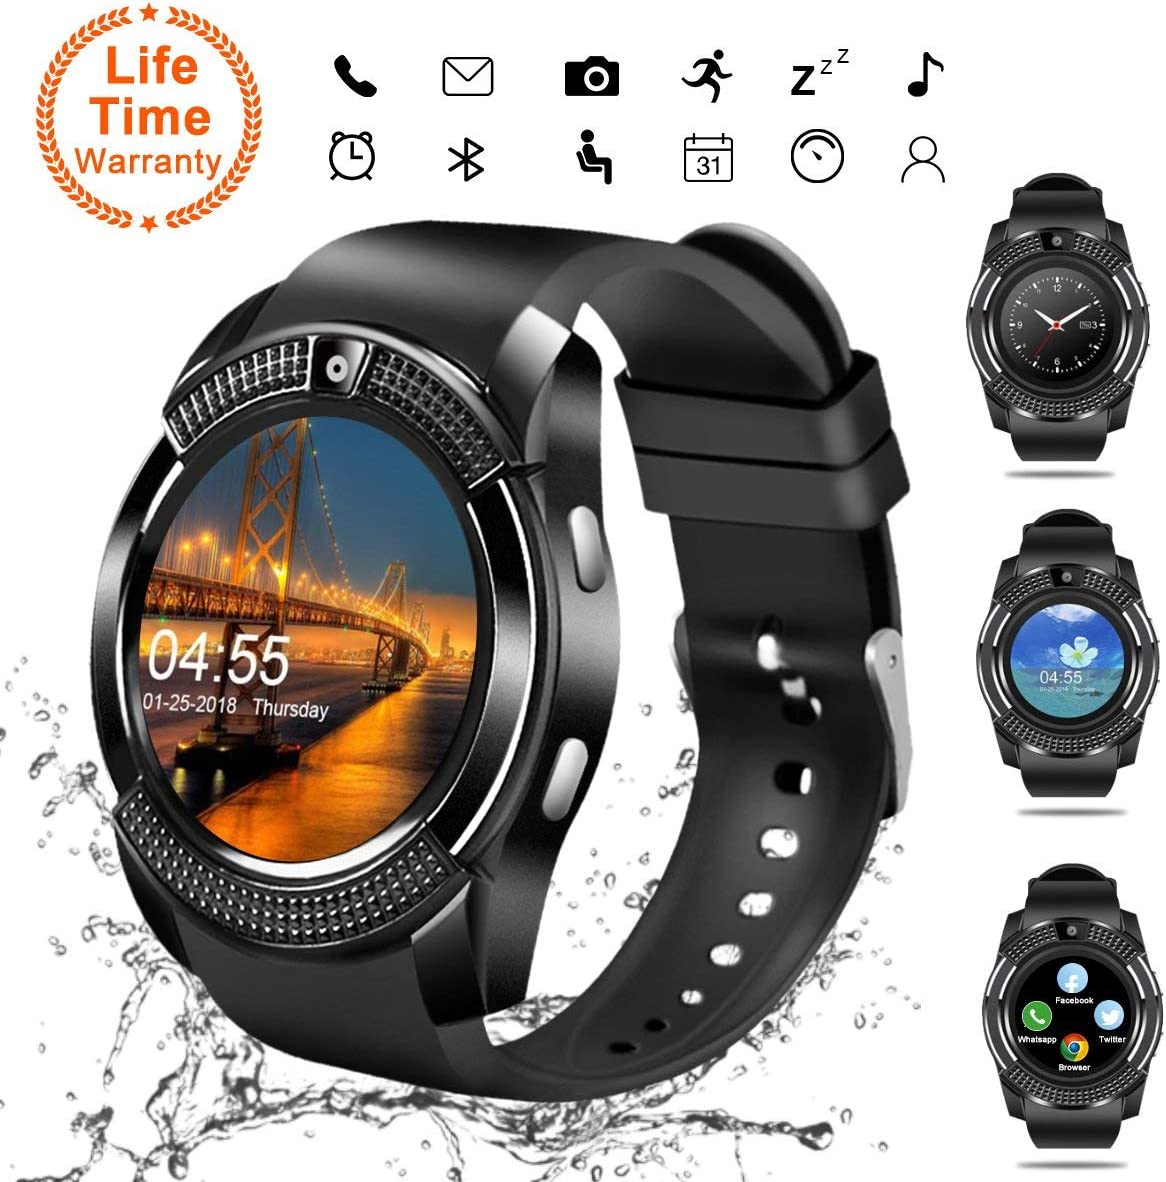 Amazon.com: Bluetooth Smartwatch Fitness Watch Wrist Phone ...